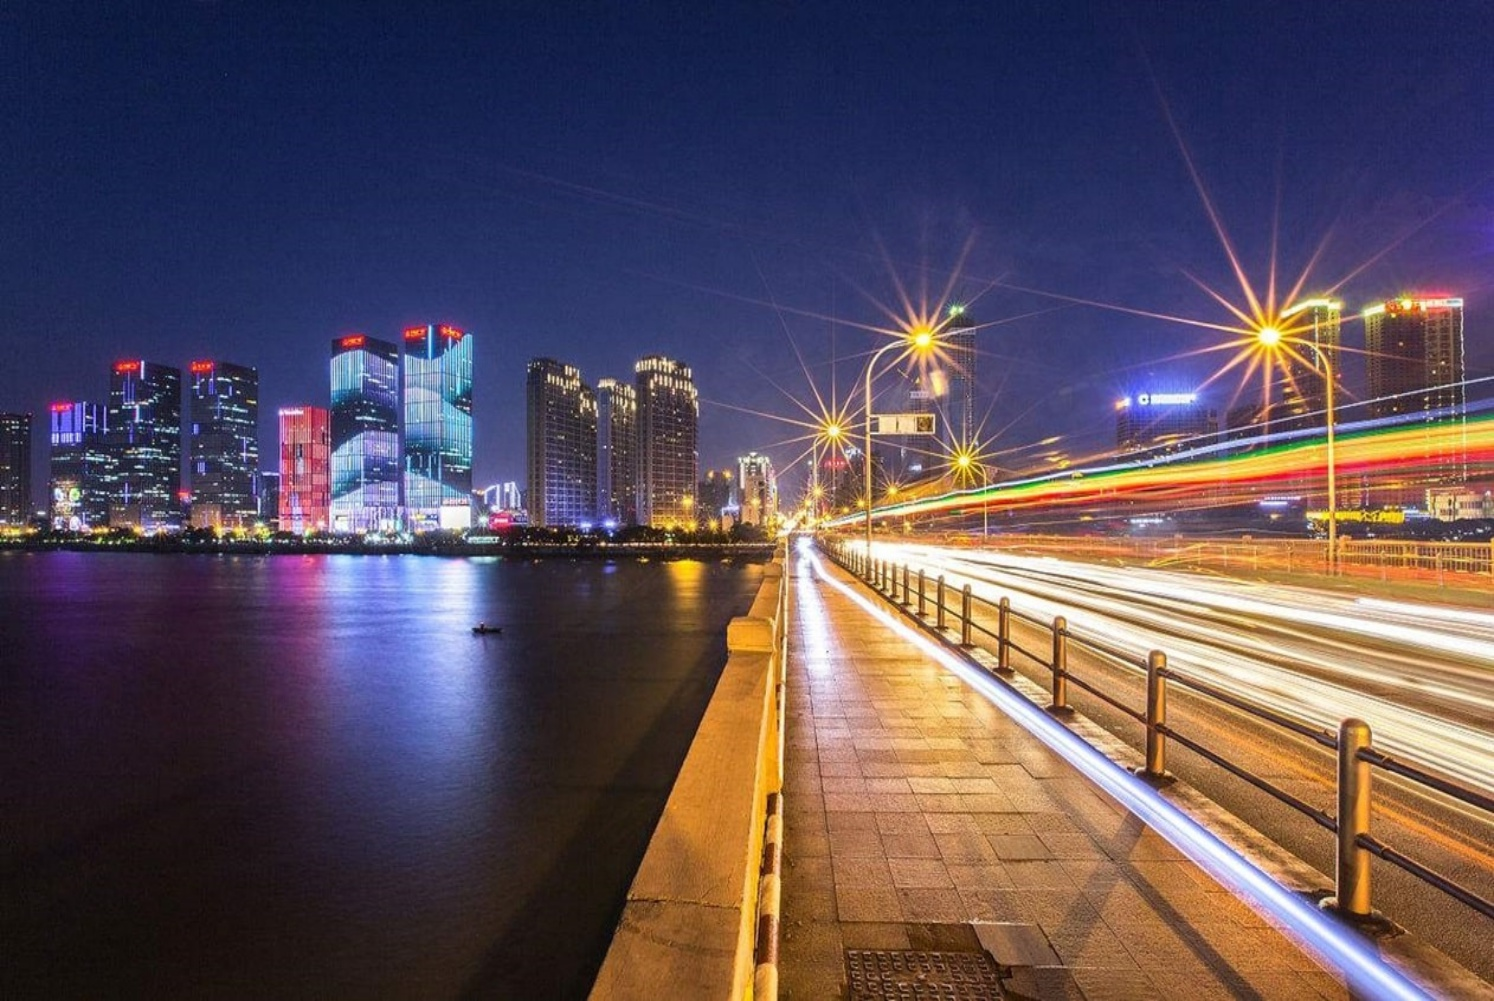 Day 7: Changsha - Welcome to Changsha, the capital of China's unmissable Hunan Province. Hunan cuisine is one of the 8 distinct cuisines across China, renowned for its love of chillies. Tantalise your taste buds as you explore this fascinating city.